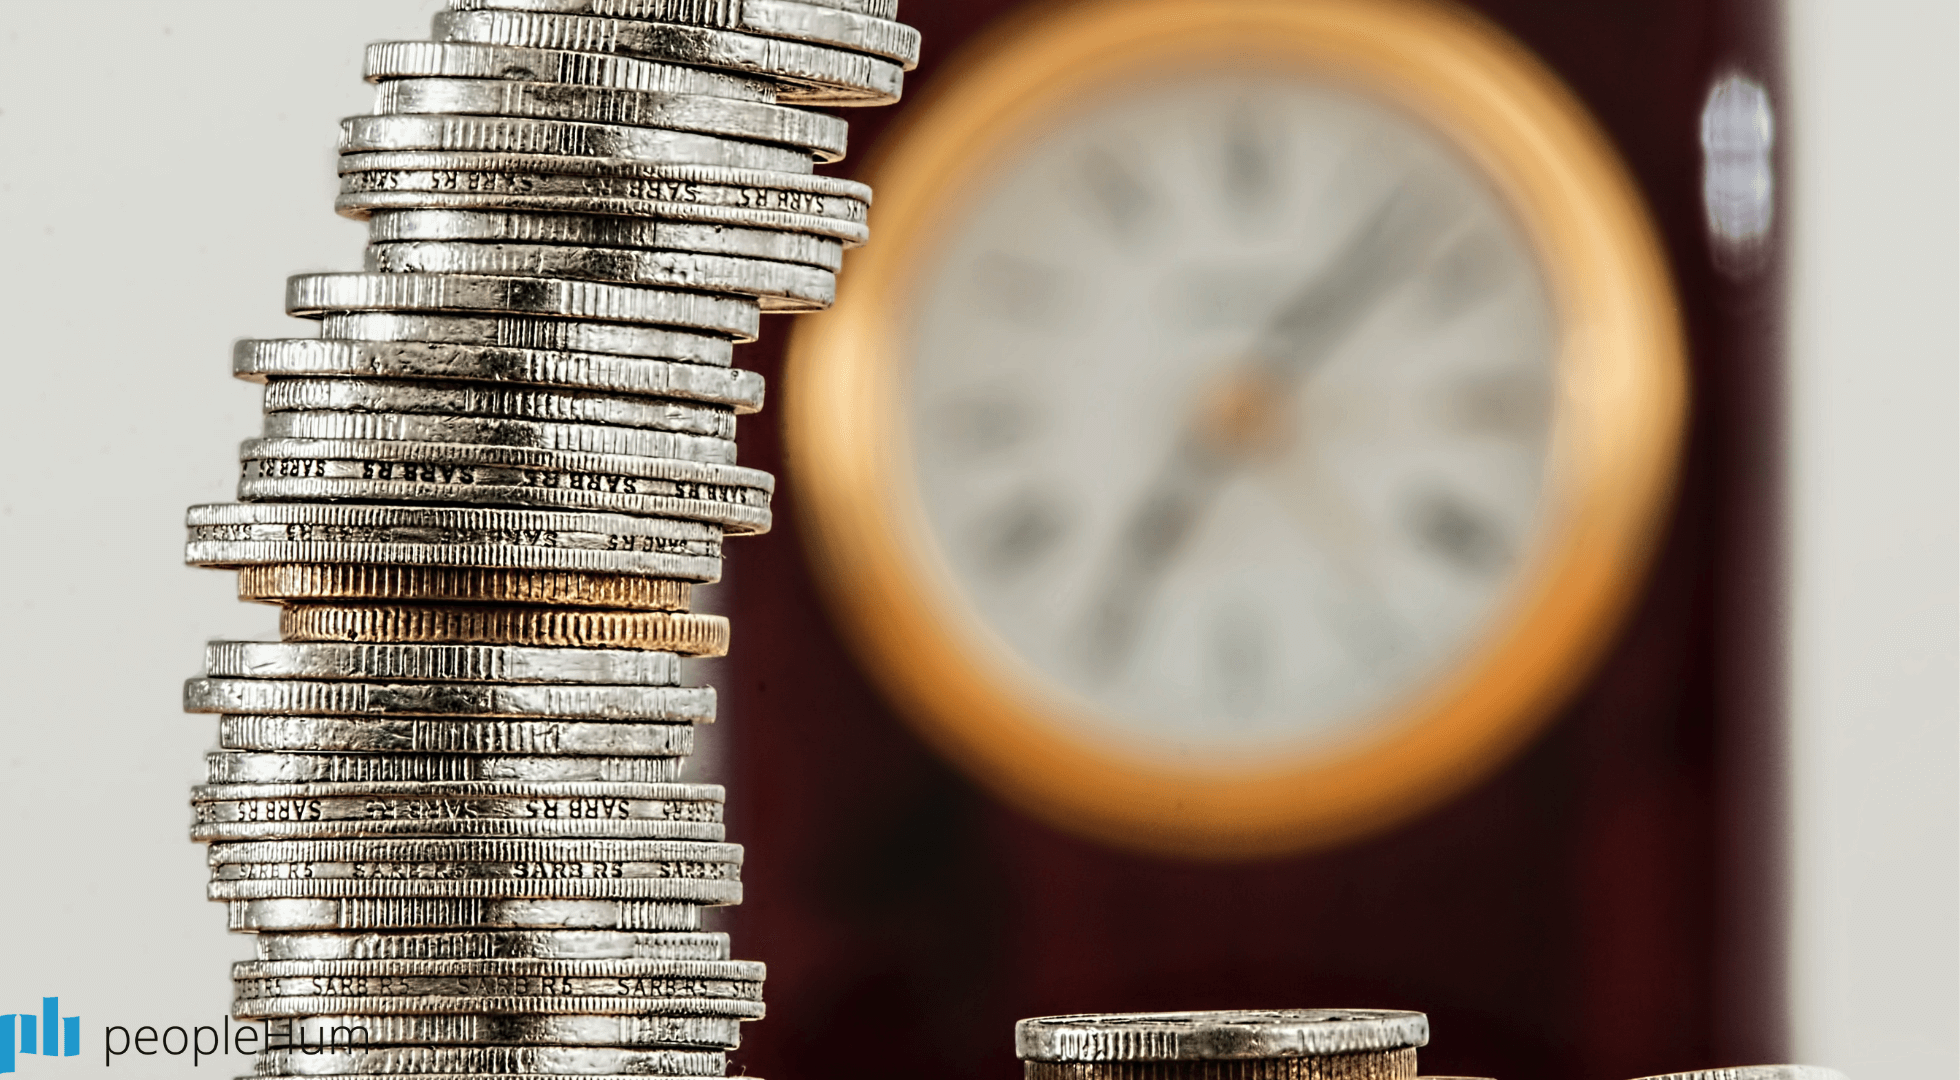 For a rational leader, time is not money, it is much more